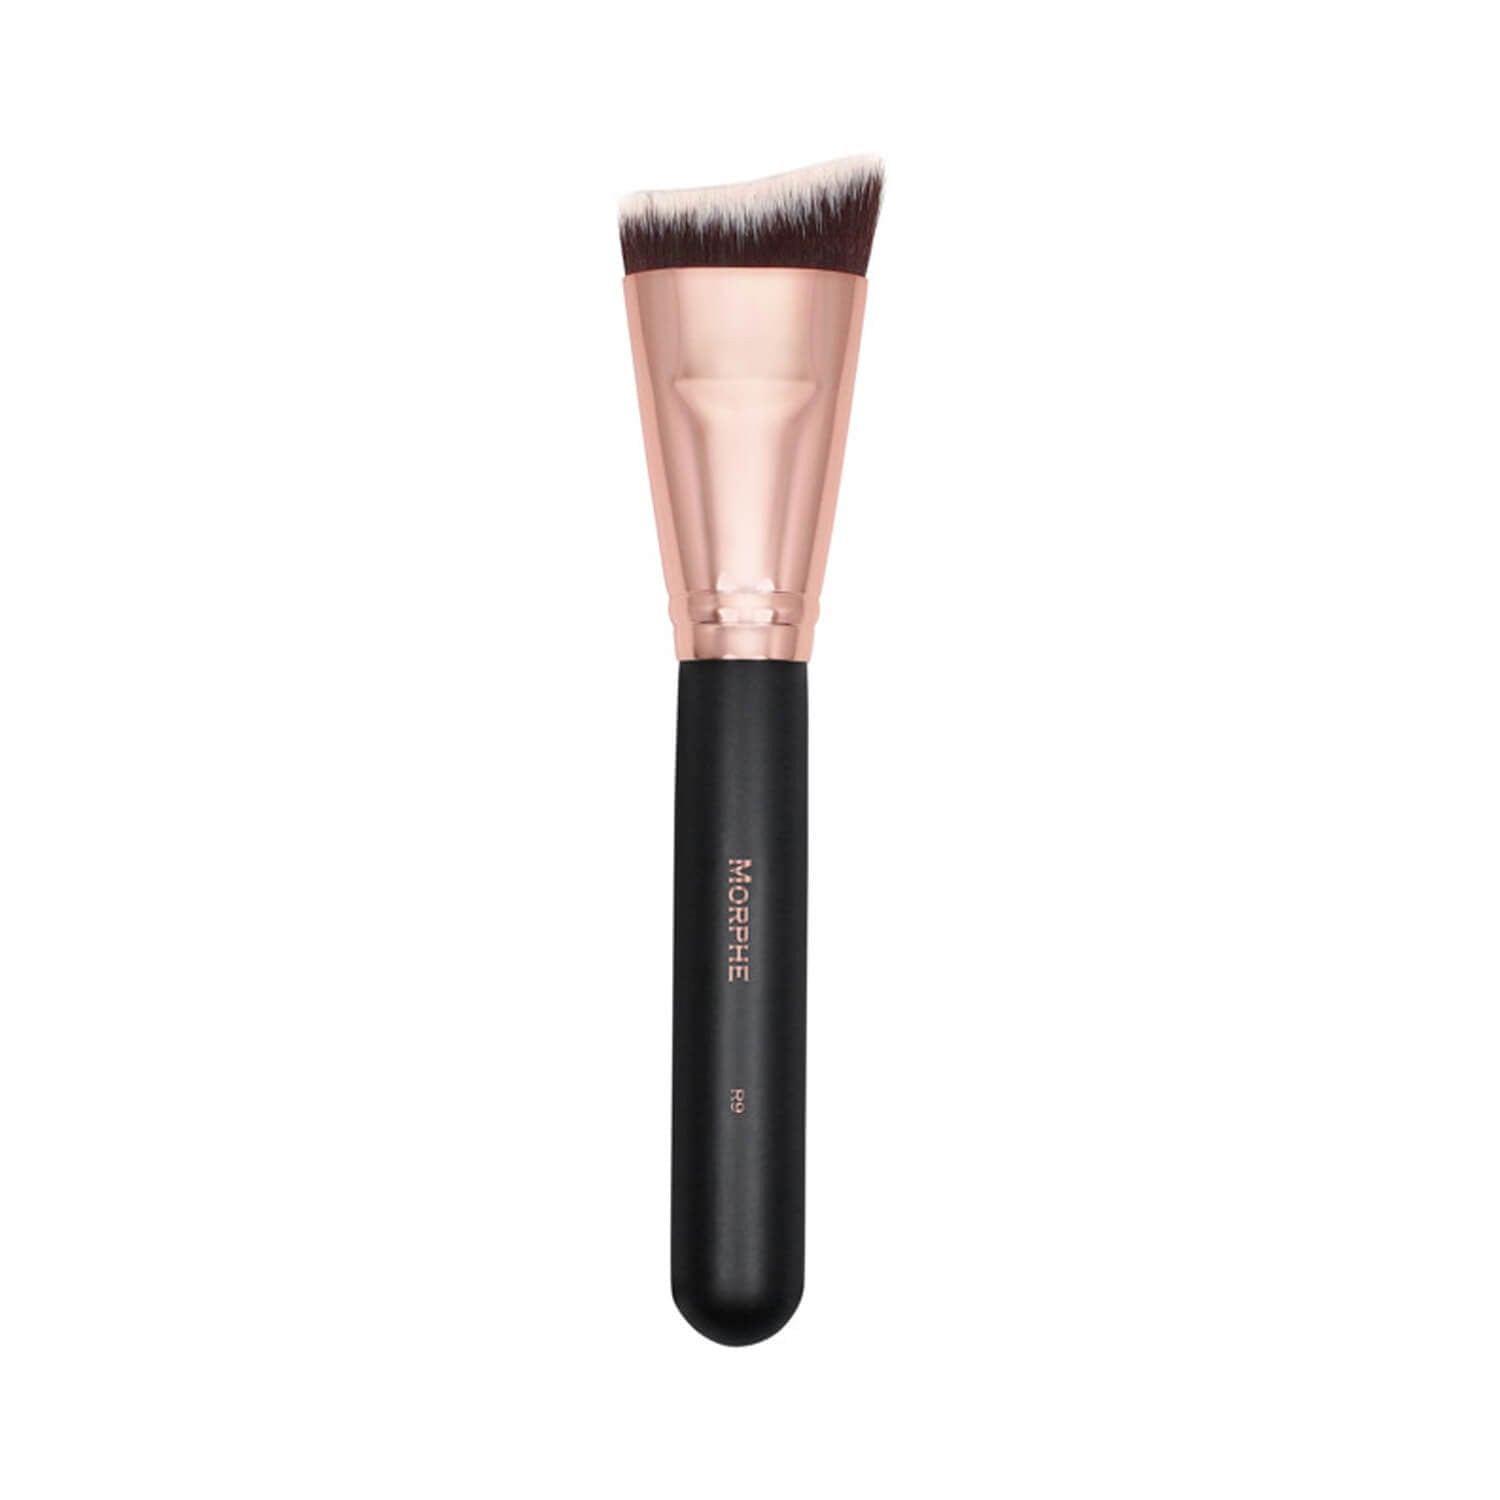 Morphe Cosmetics R9 Curved Contour Brush